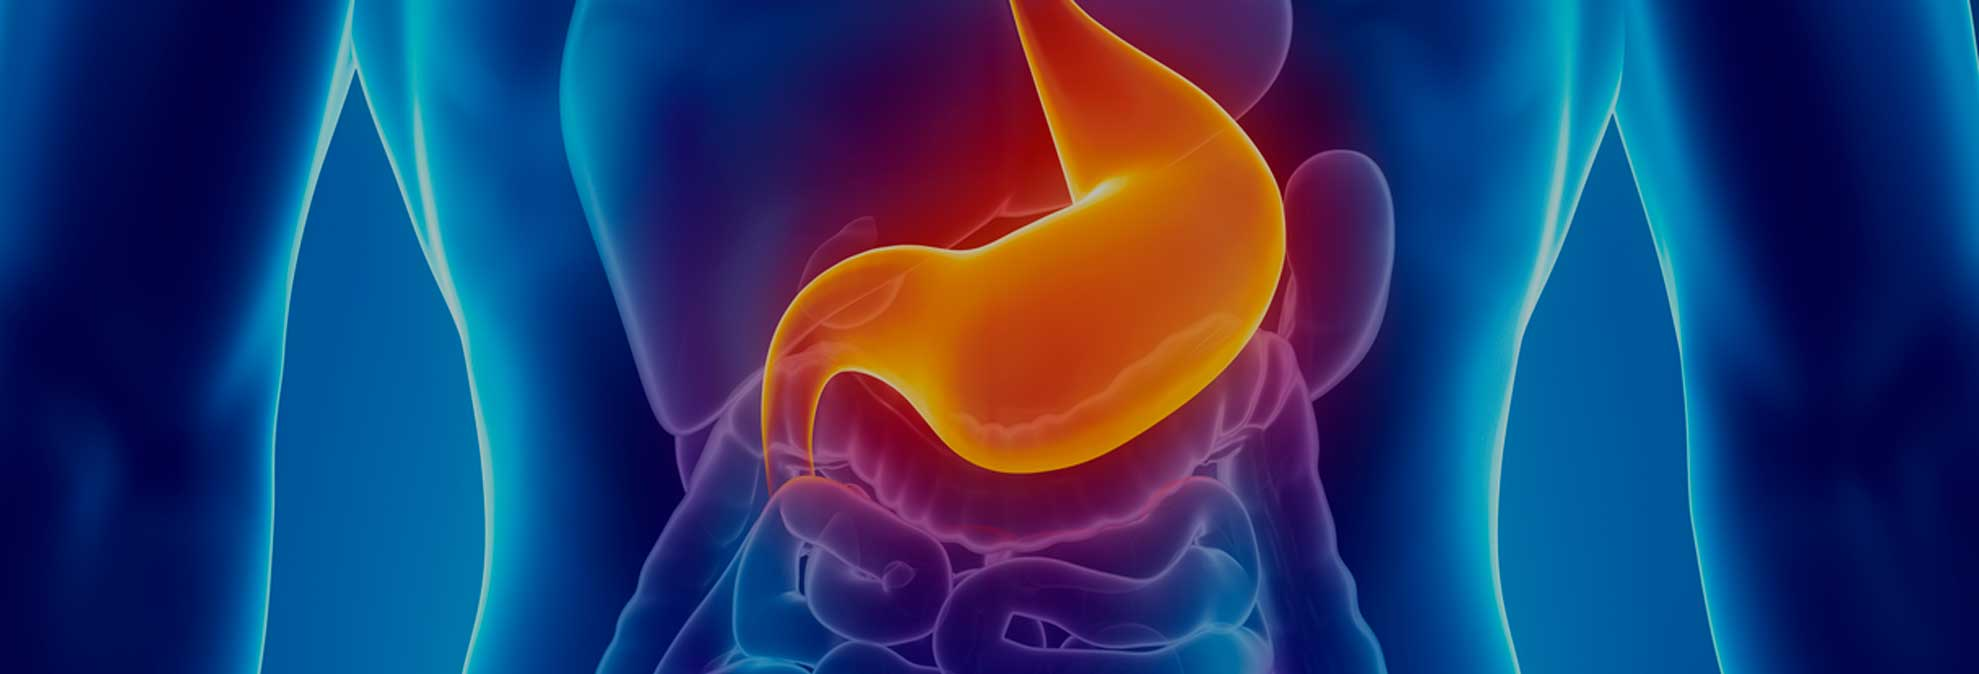 Ease Constipation And Other Tummy Troubles Consumer Reports